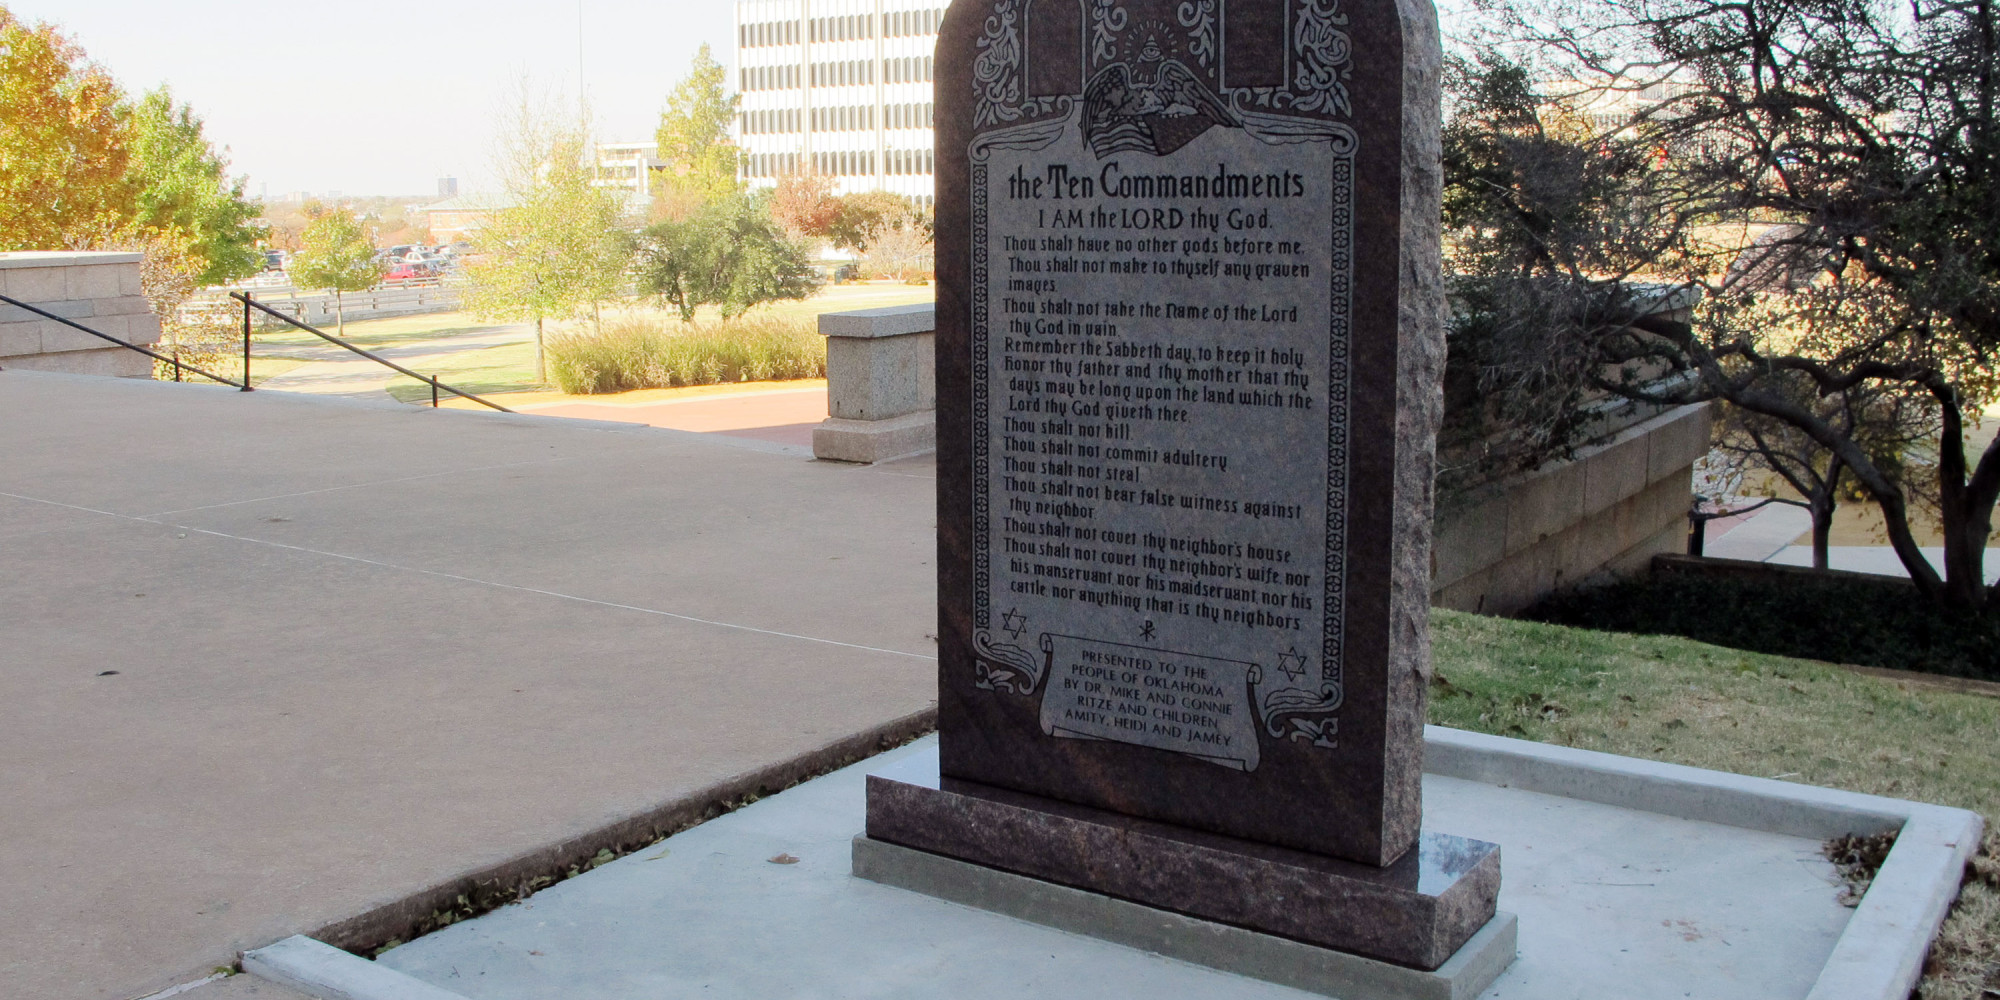 Someone Drove Through The Disputed Oklahoma Ten Commandments Monument And Smashed It To Pieces